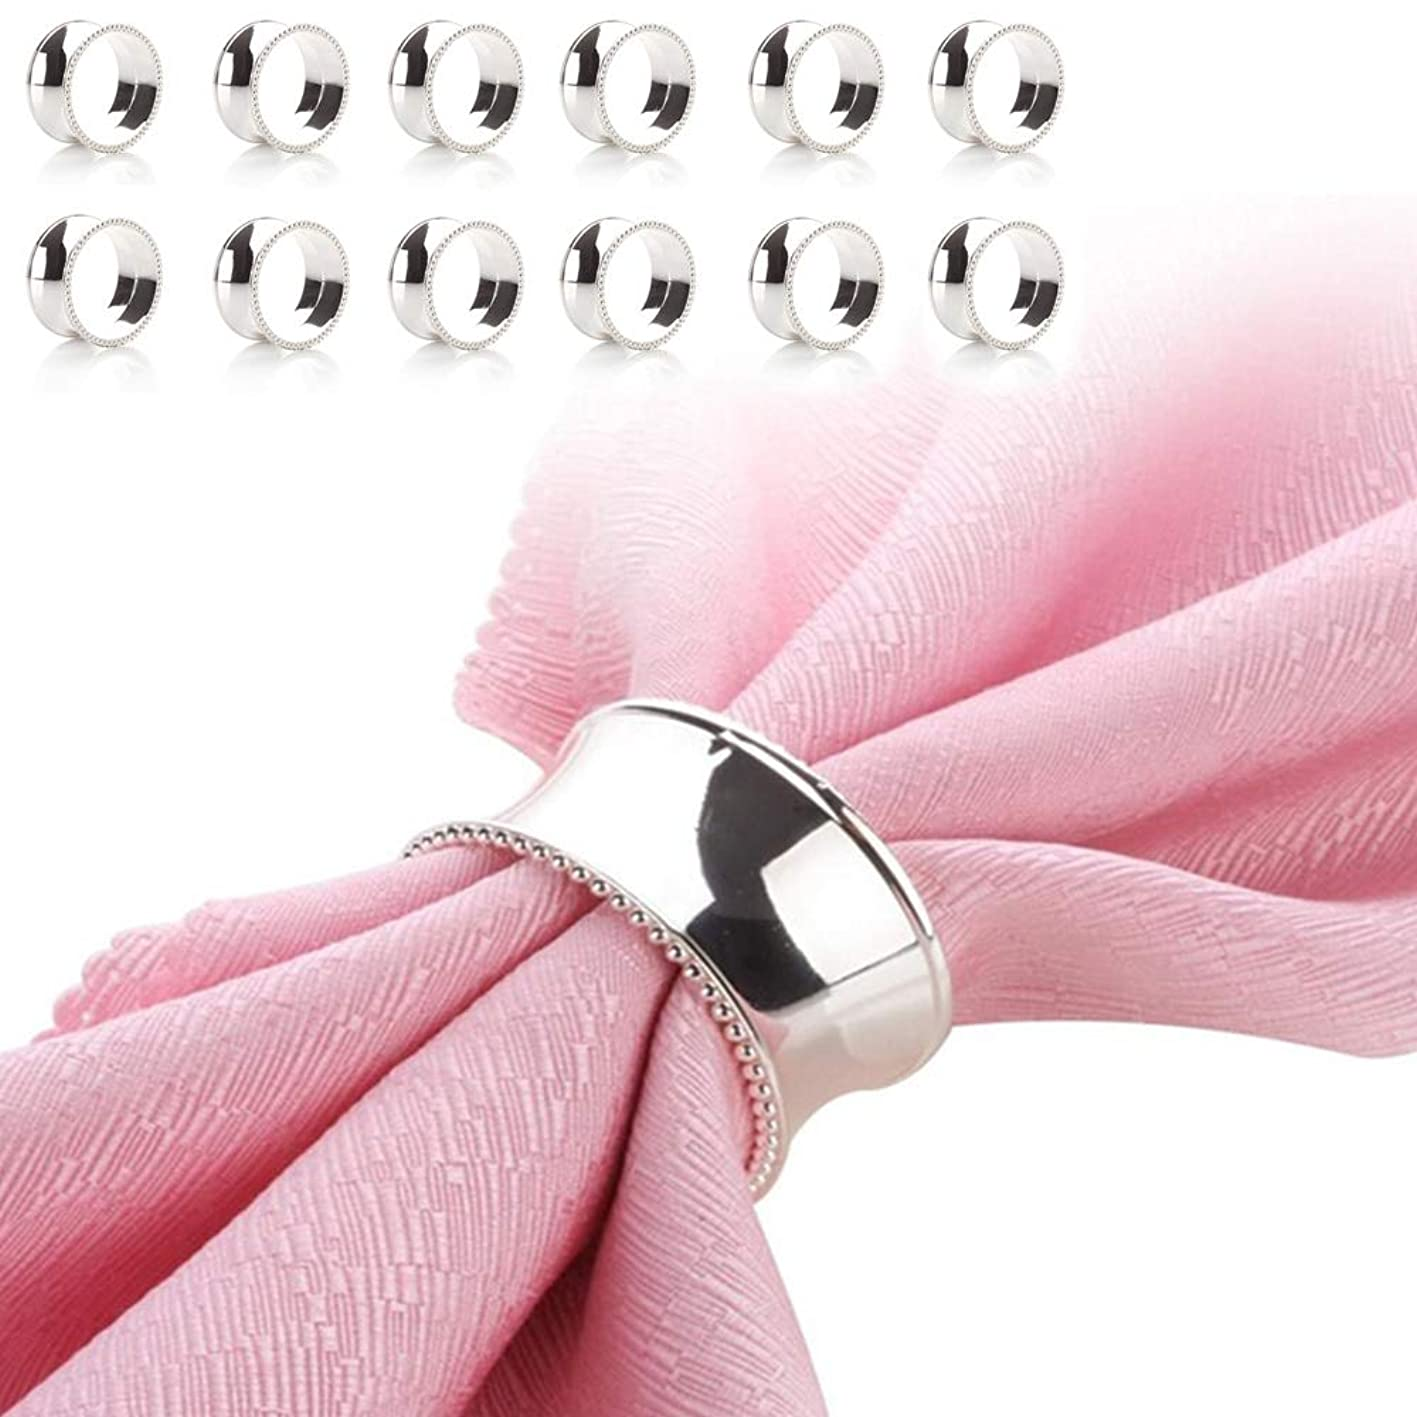 HSCC666 Set of 12 Napkin Rings, Silver Napkin Ring Holders with Bead Side for Table Decorations, Wedding, Dinner, Party zxsqlzimwbk481